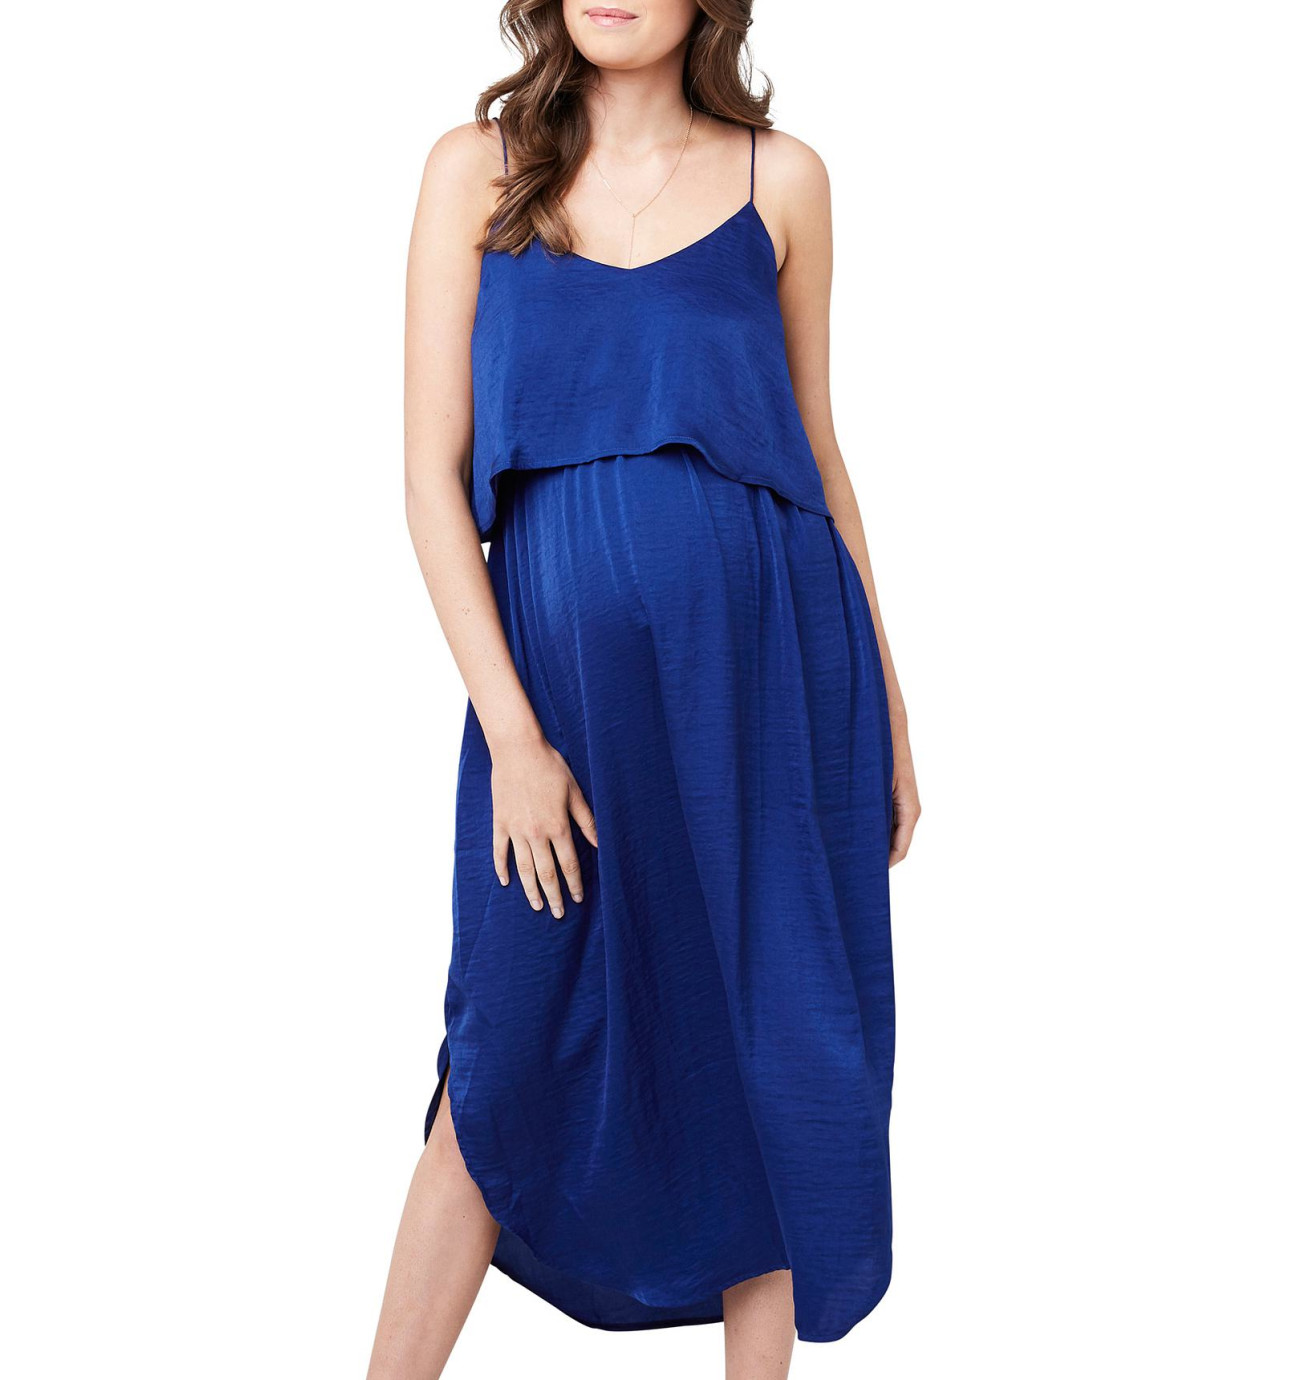 Maternity dresses buy womens maternity dresses online david jones nursing slip dress ombrellifo Choice Image